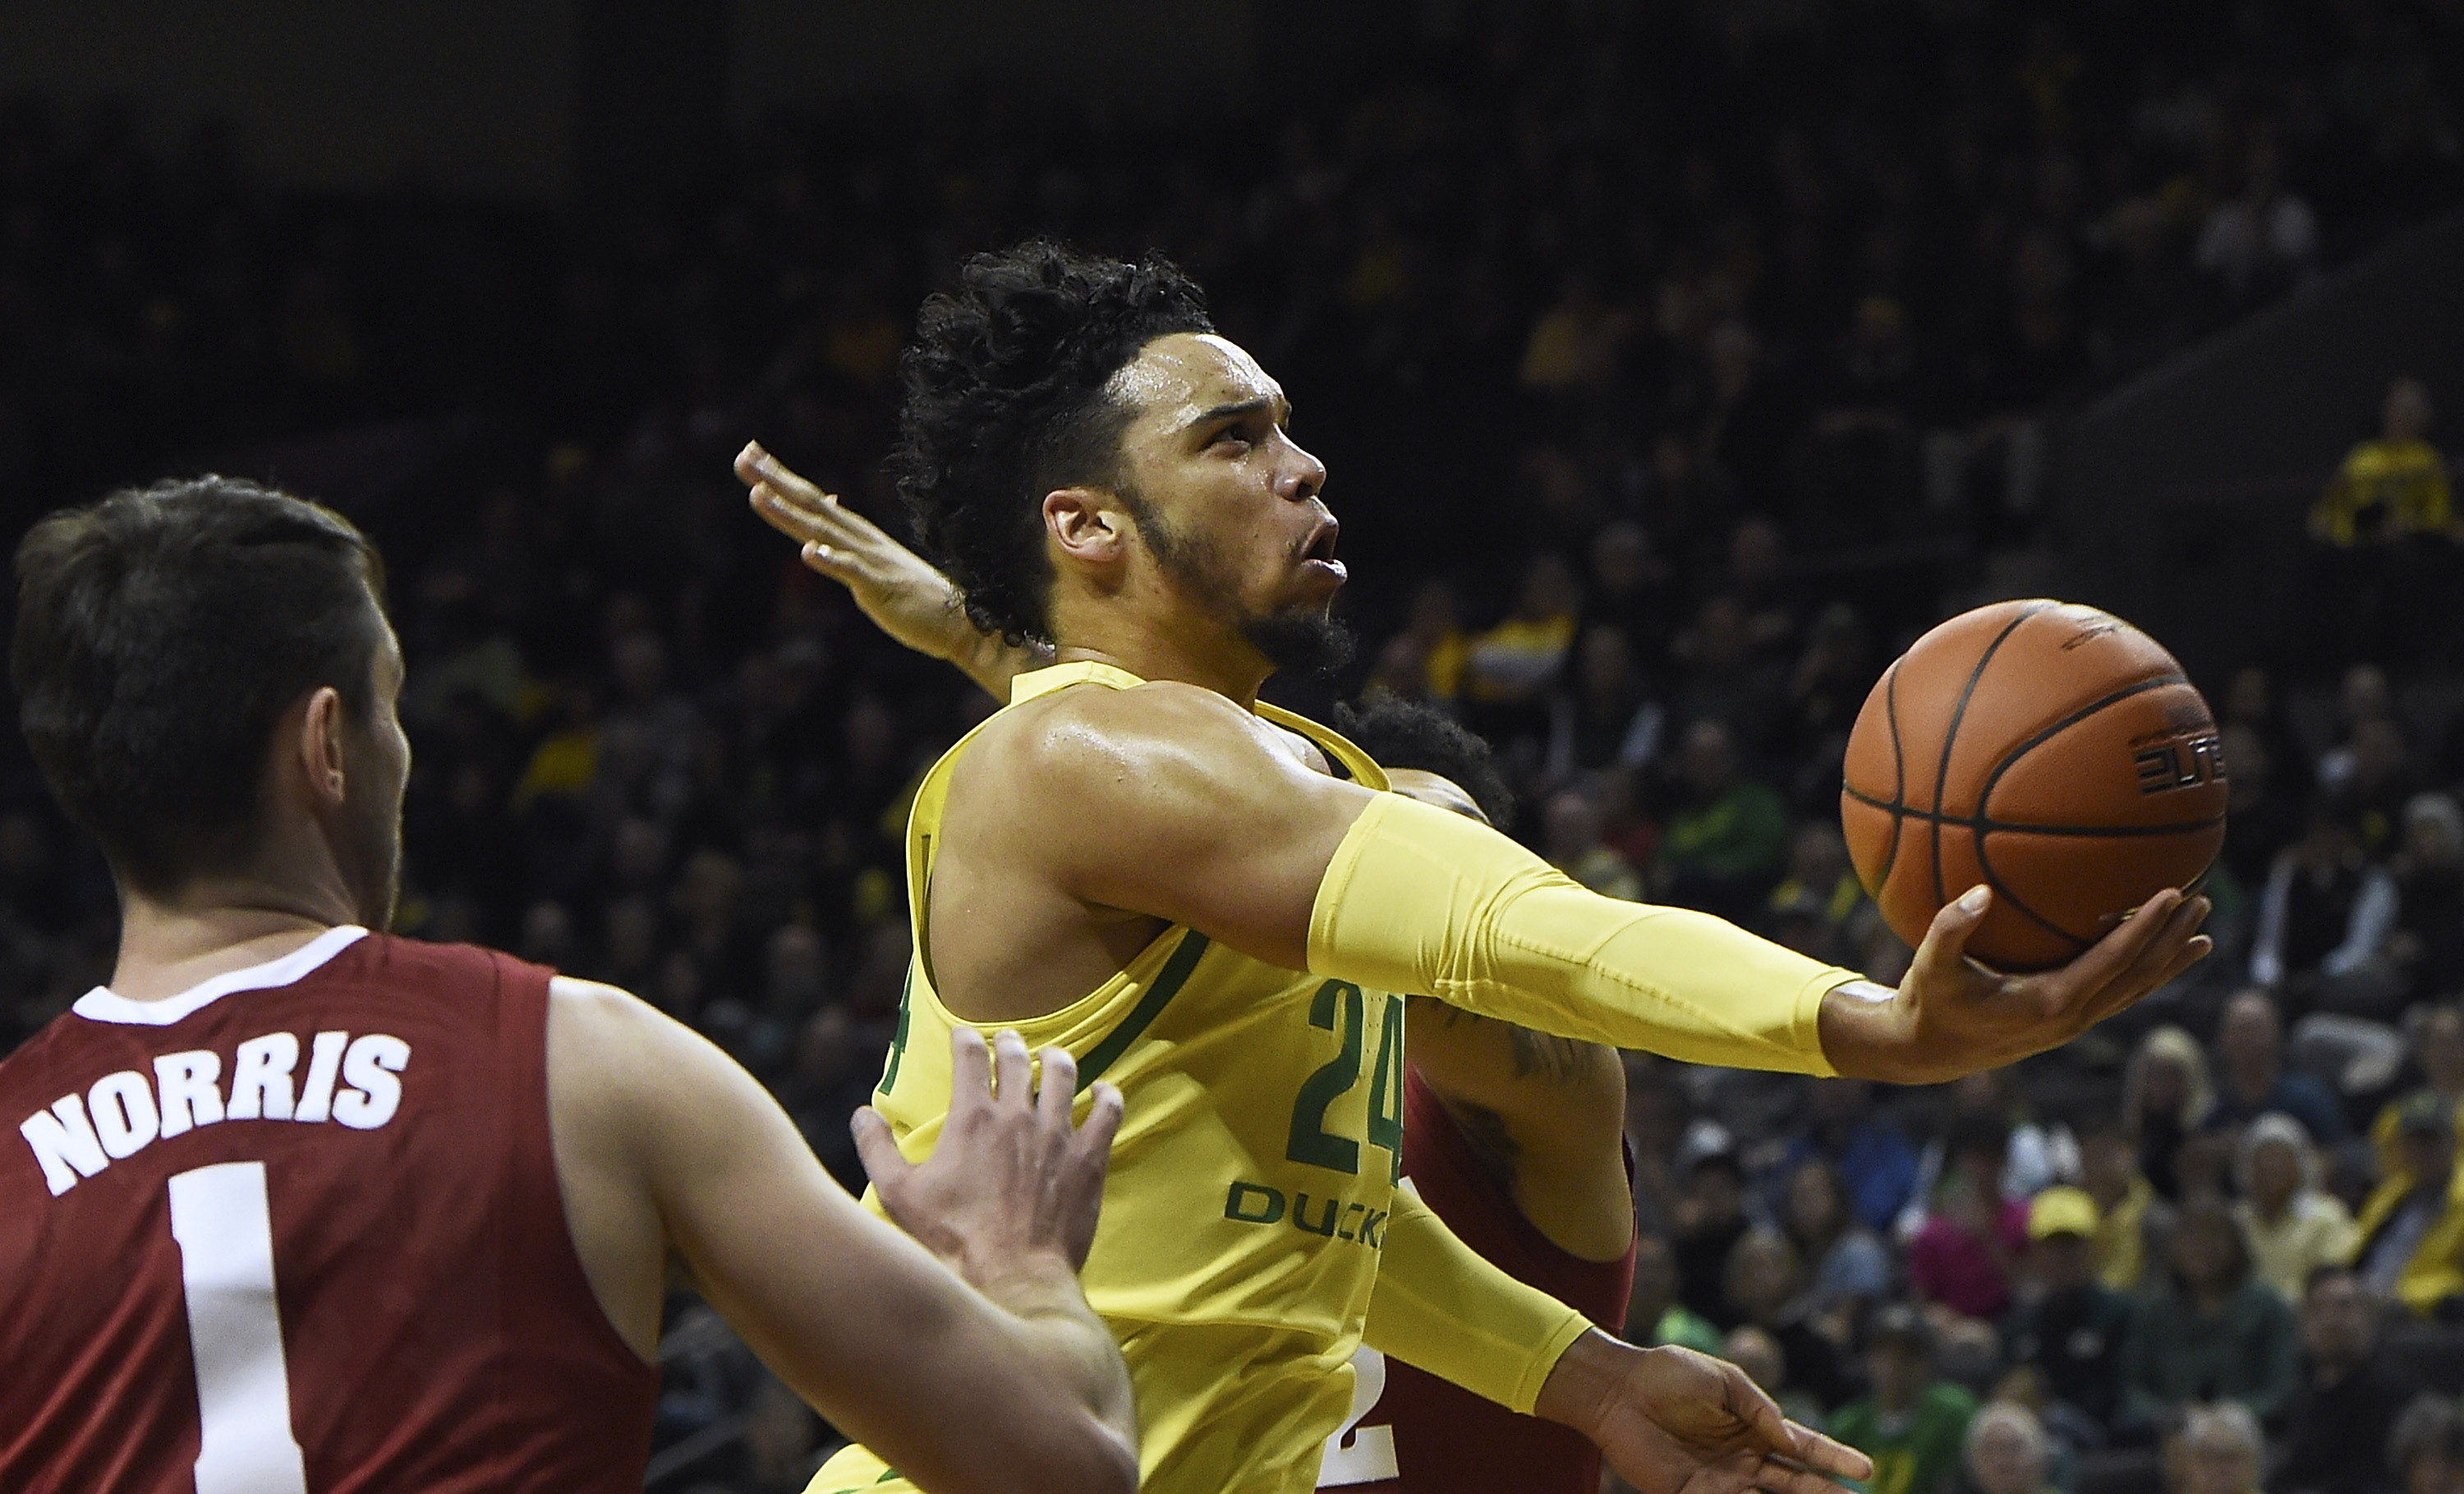 EUGENE, OR - DECEMBER 11: Dillon Brooks #24 of the Oregon Ducks drives to the basket on Riley Norris #1 of the Alabama Crimson Tide during the first half of the game at Matthew Knight Arena on December 11, 2016 in Eugene, Oregon. (Photo by Steve Dykes/Getty Images)